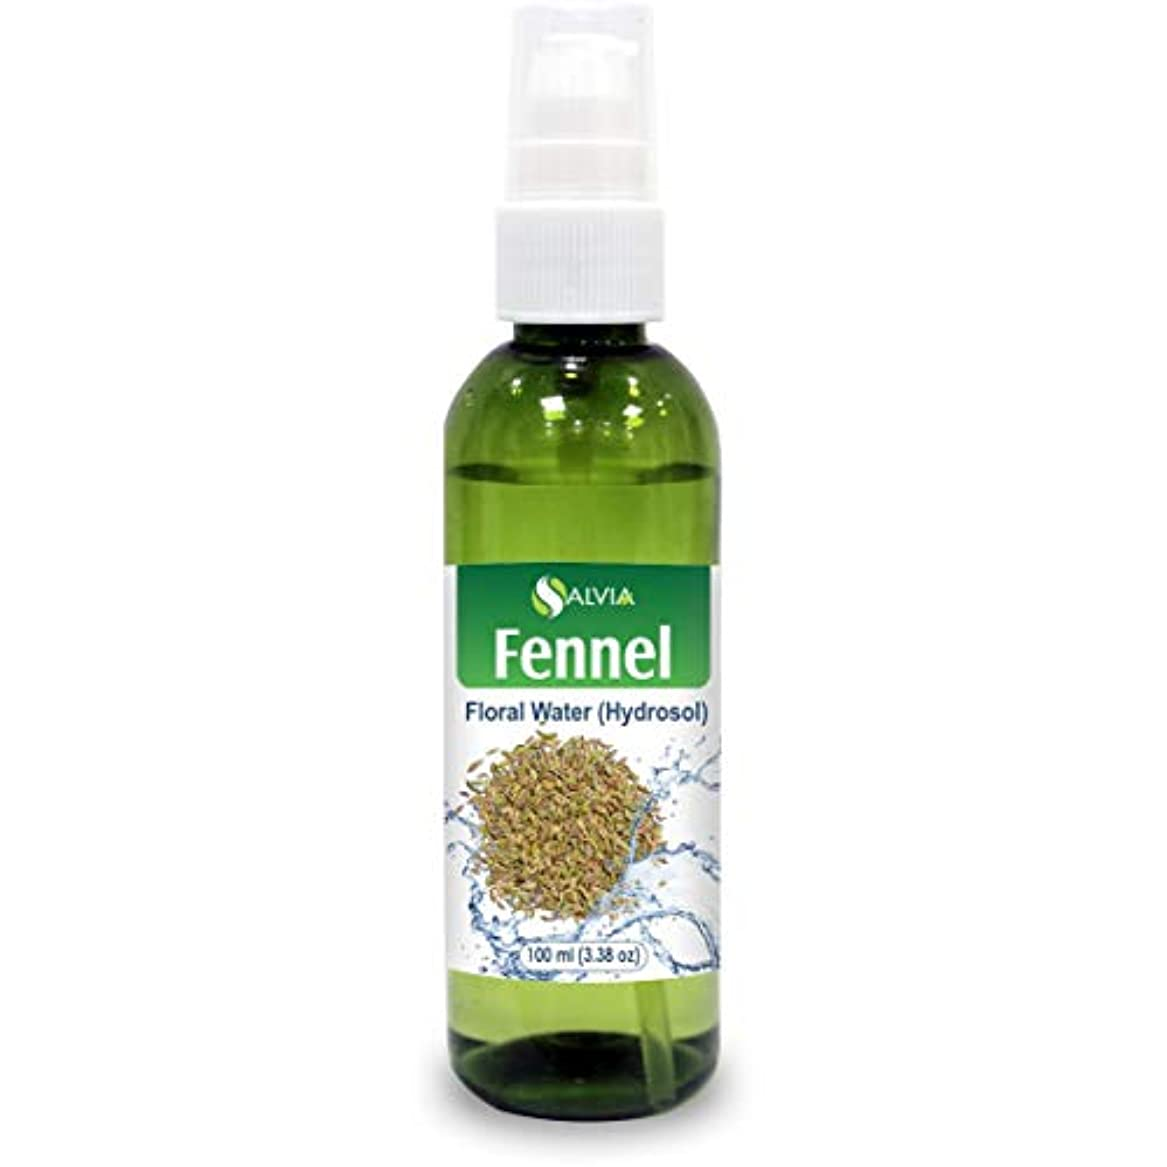 Fennel Floral Water 100ml (Hydrosol) 100% Pure And Natural